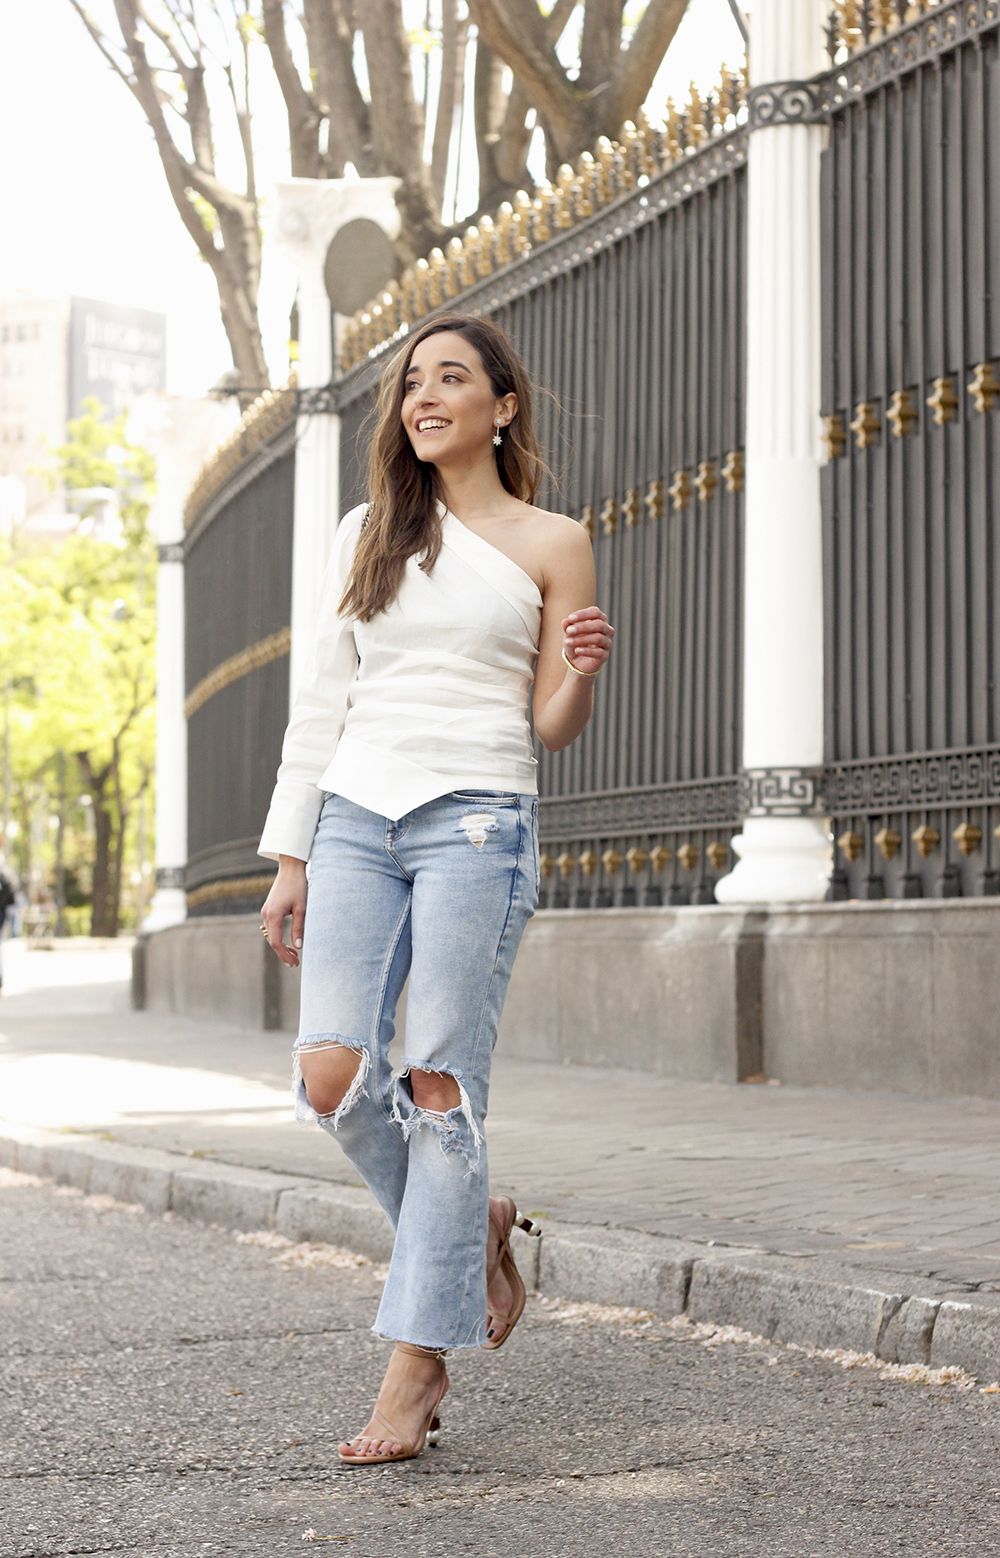 White Asymmetrical Linen Top jeans gucci bag street style outfit 201911